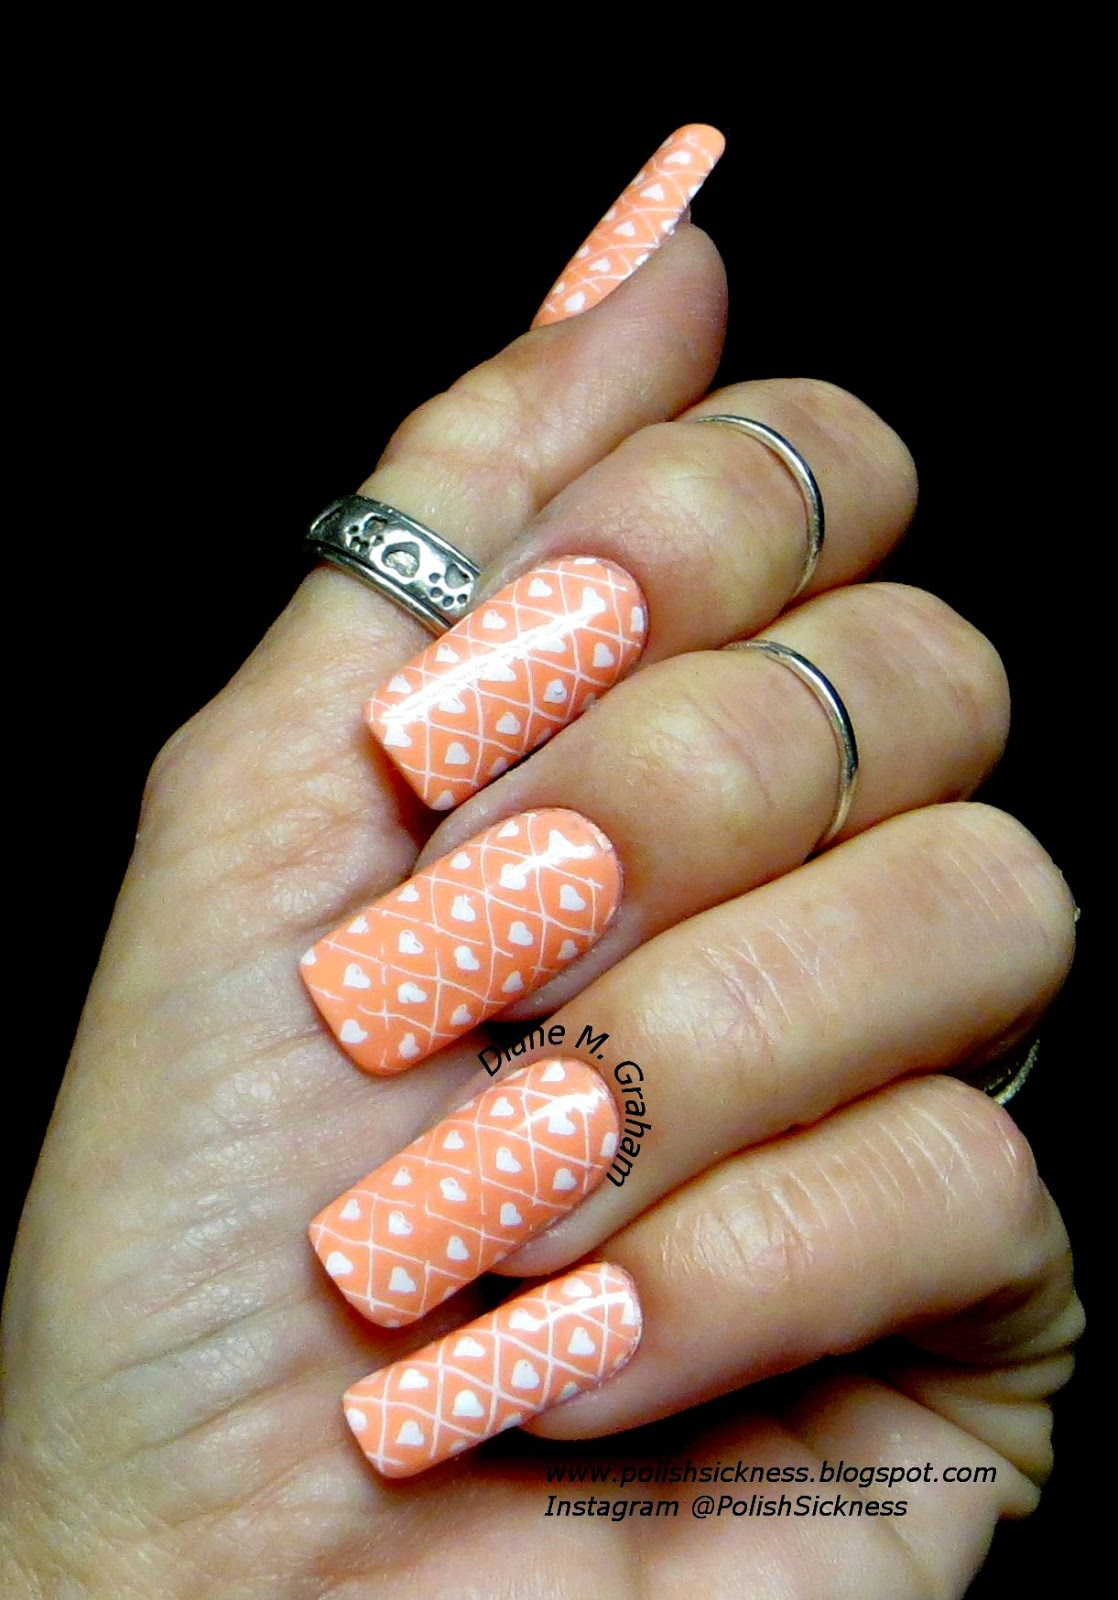 China Glaze More to Explore, Konad white, DRK-A stamp, heart,  Valentine mani